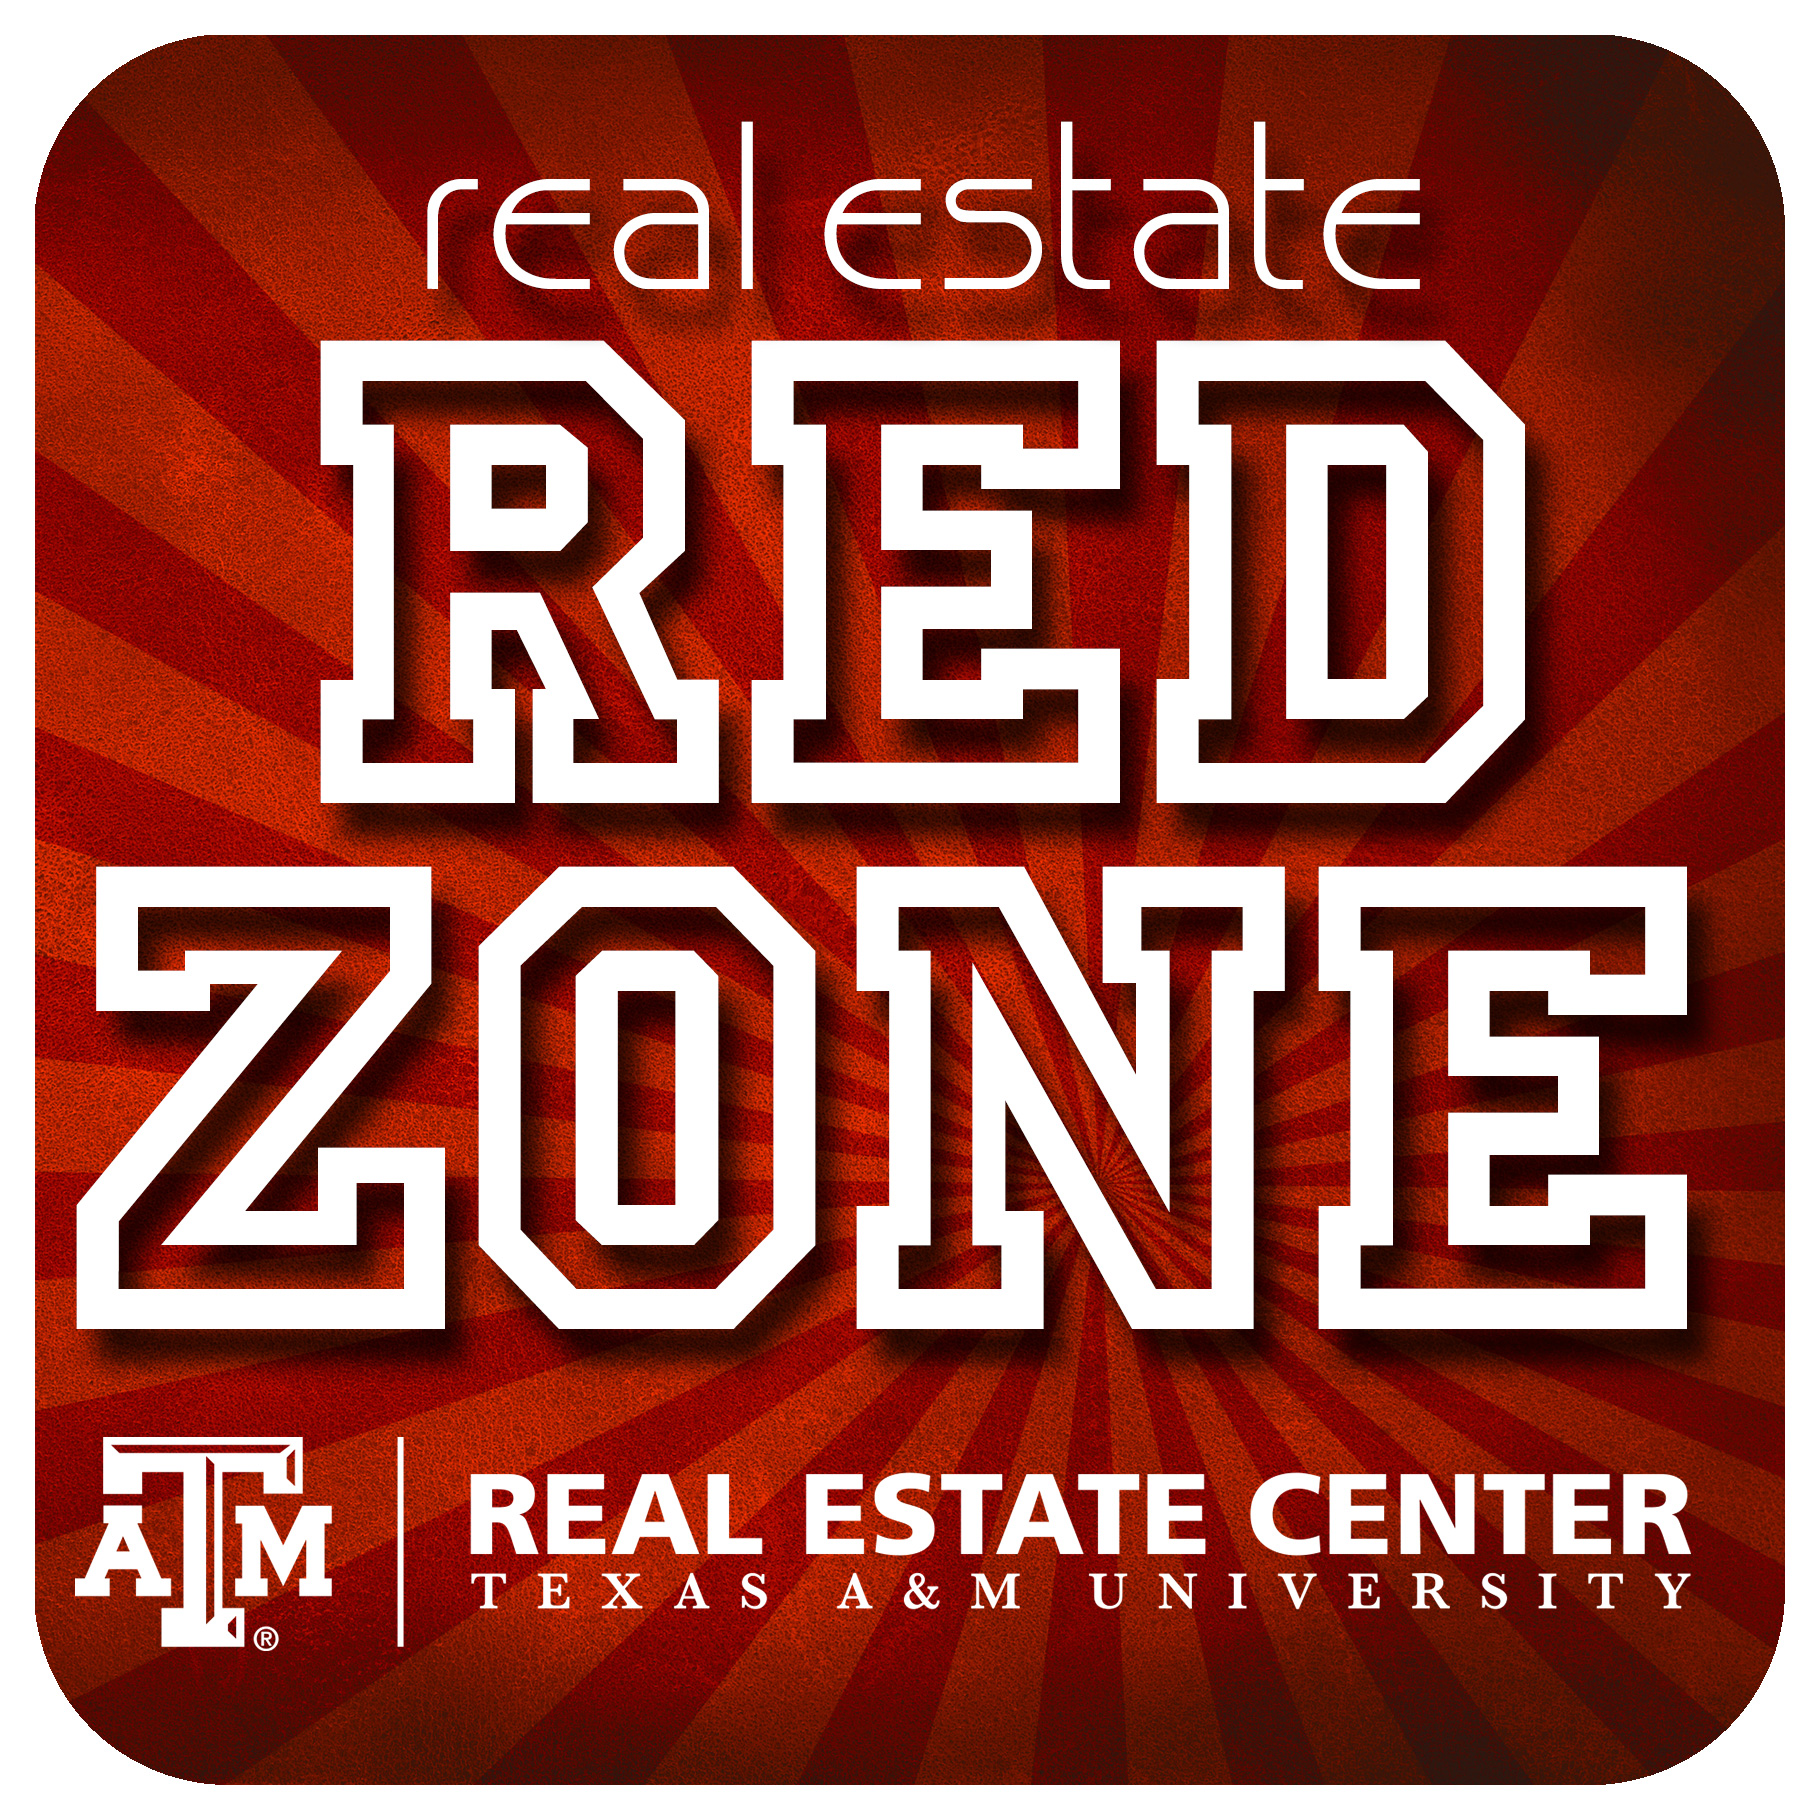 Real Estate Red Zone logo